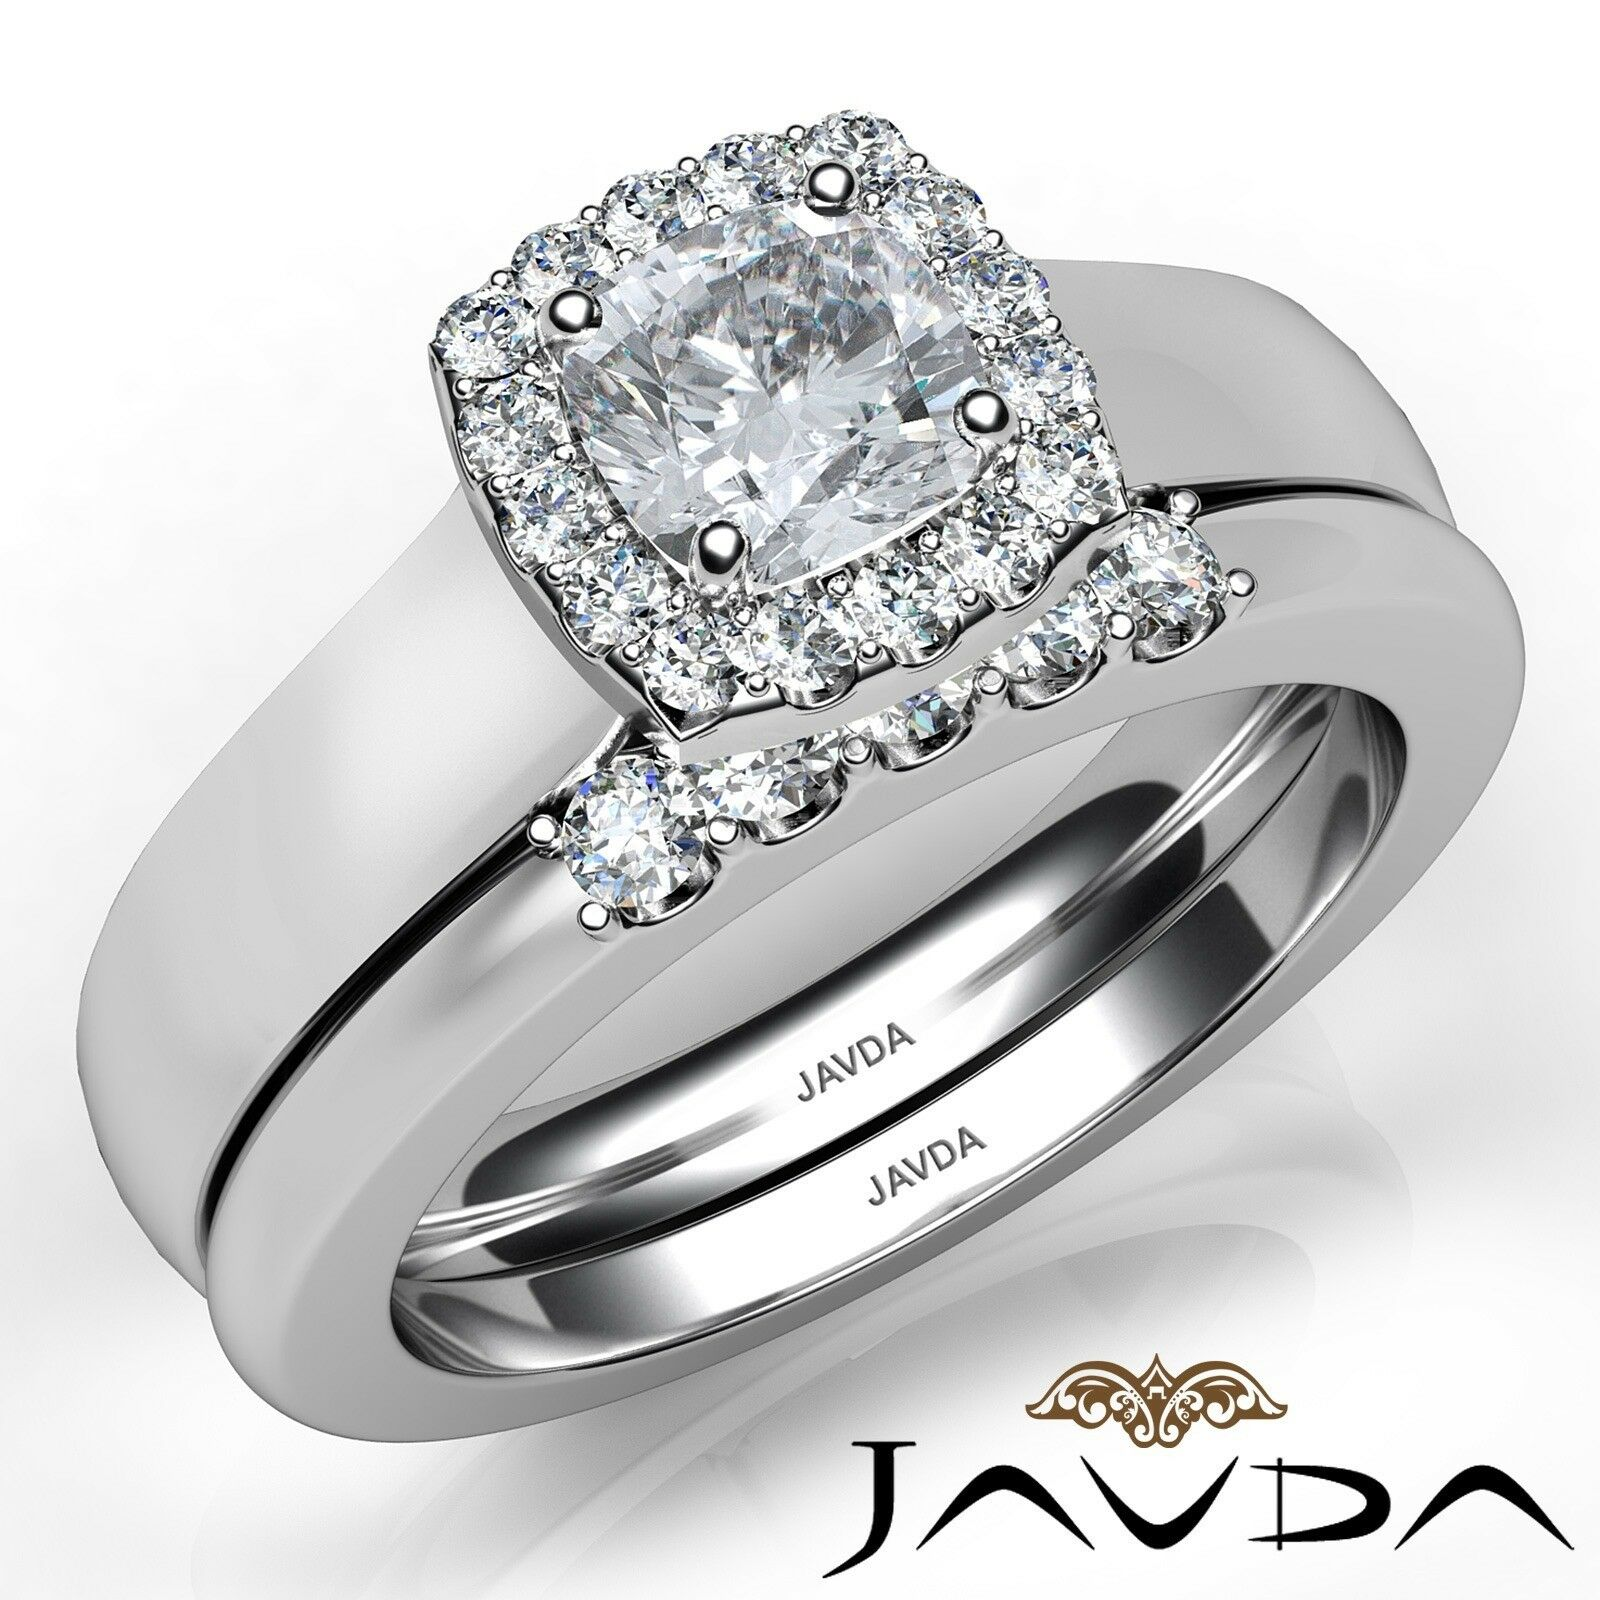 1.04ctw Solitaire Halo Bridal Cushion Diamond Engagement Ring GIA H-VS2 W Gold 1